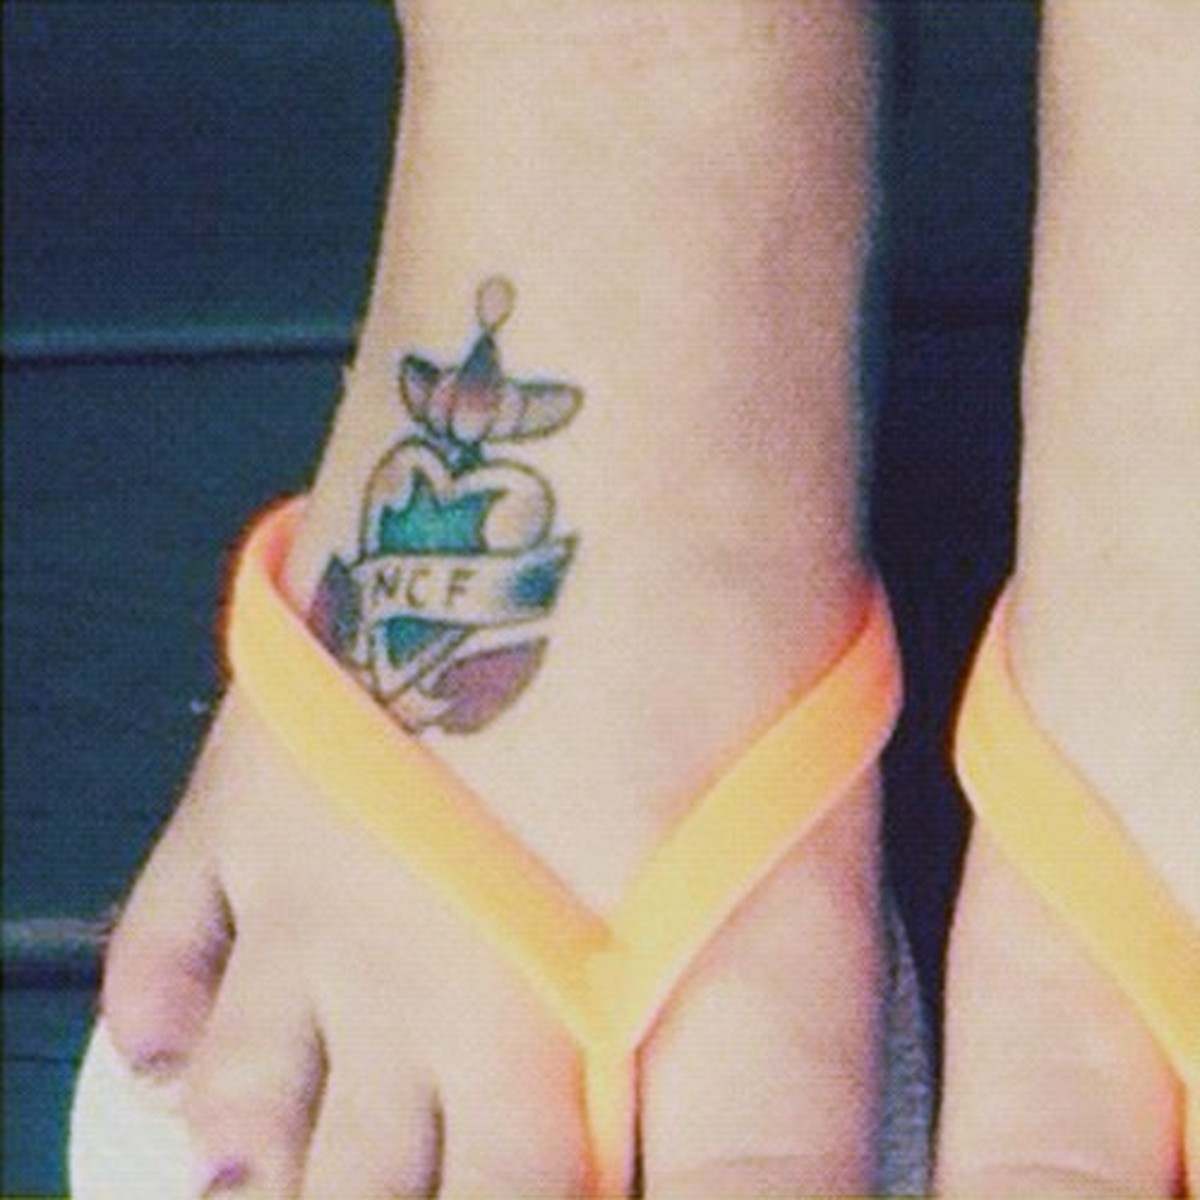 halsey-tattoo-anchor-foot-500x500